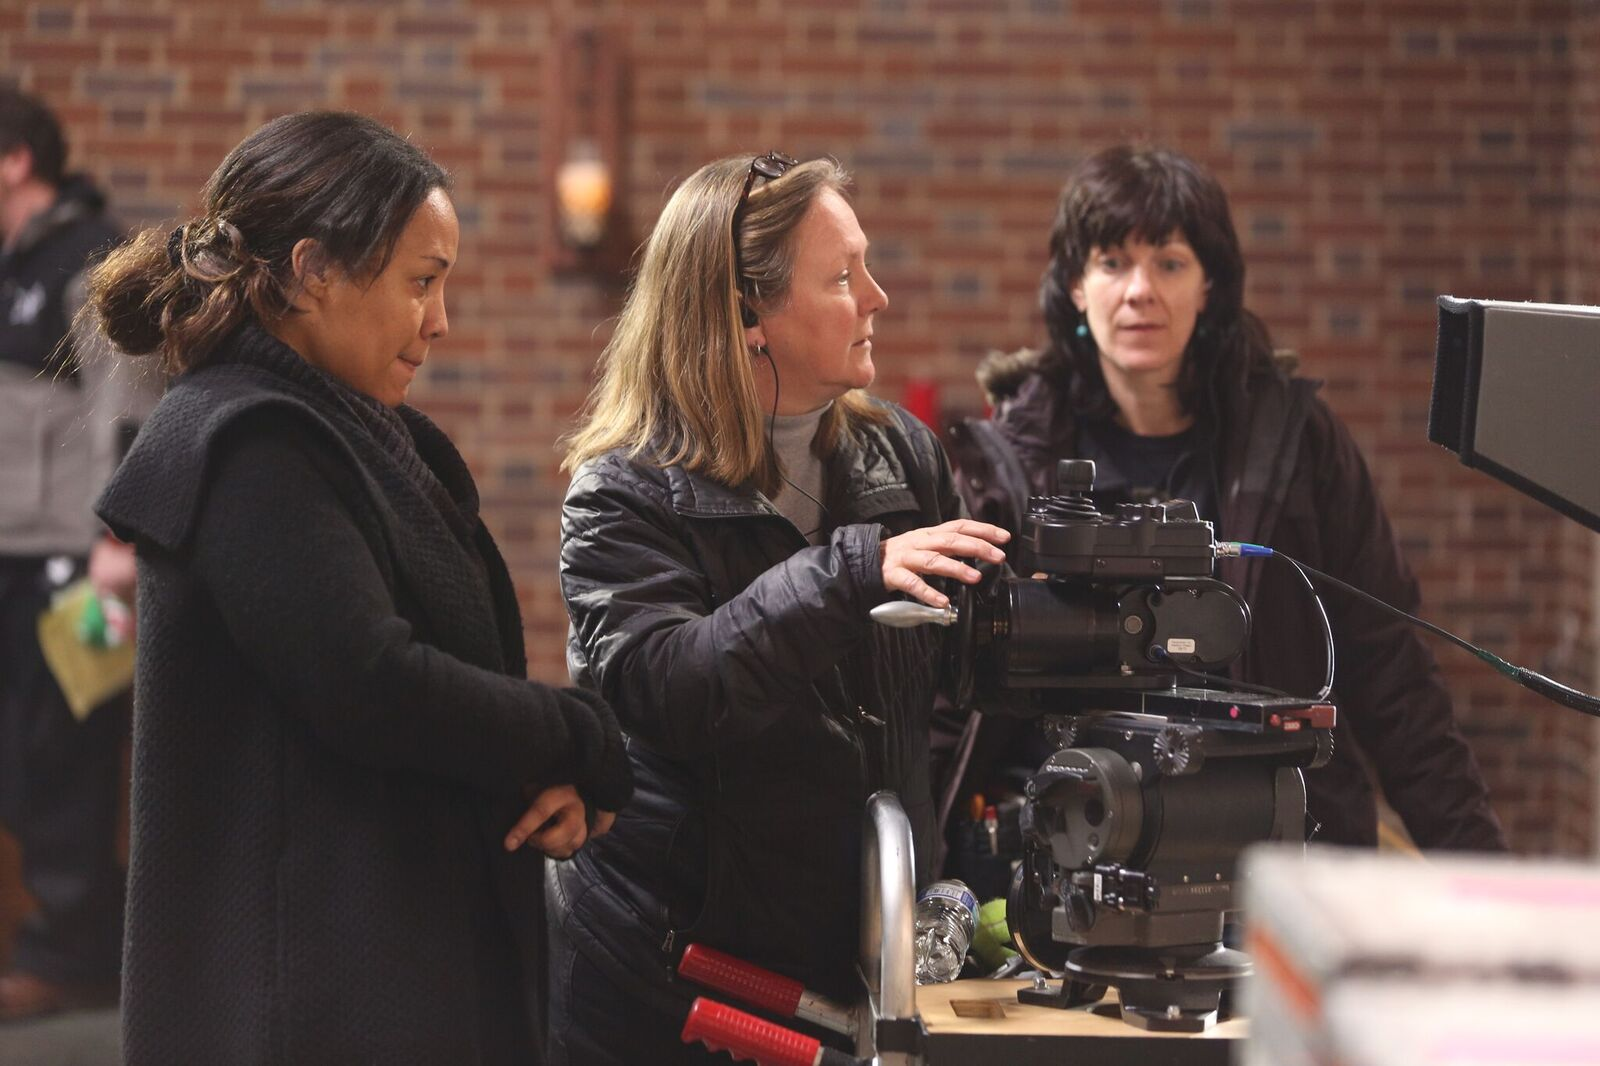 Maggie Betts, left, directs crew in Novitiate